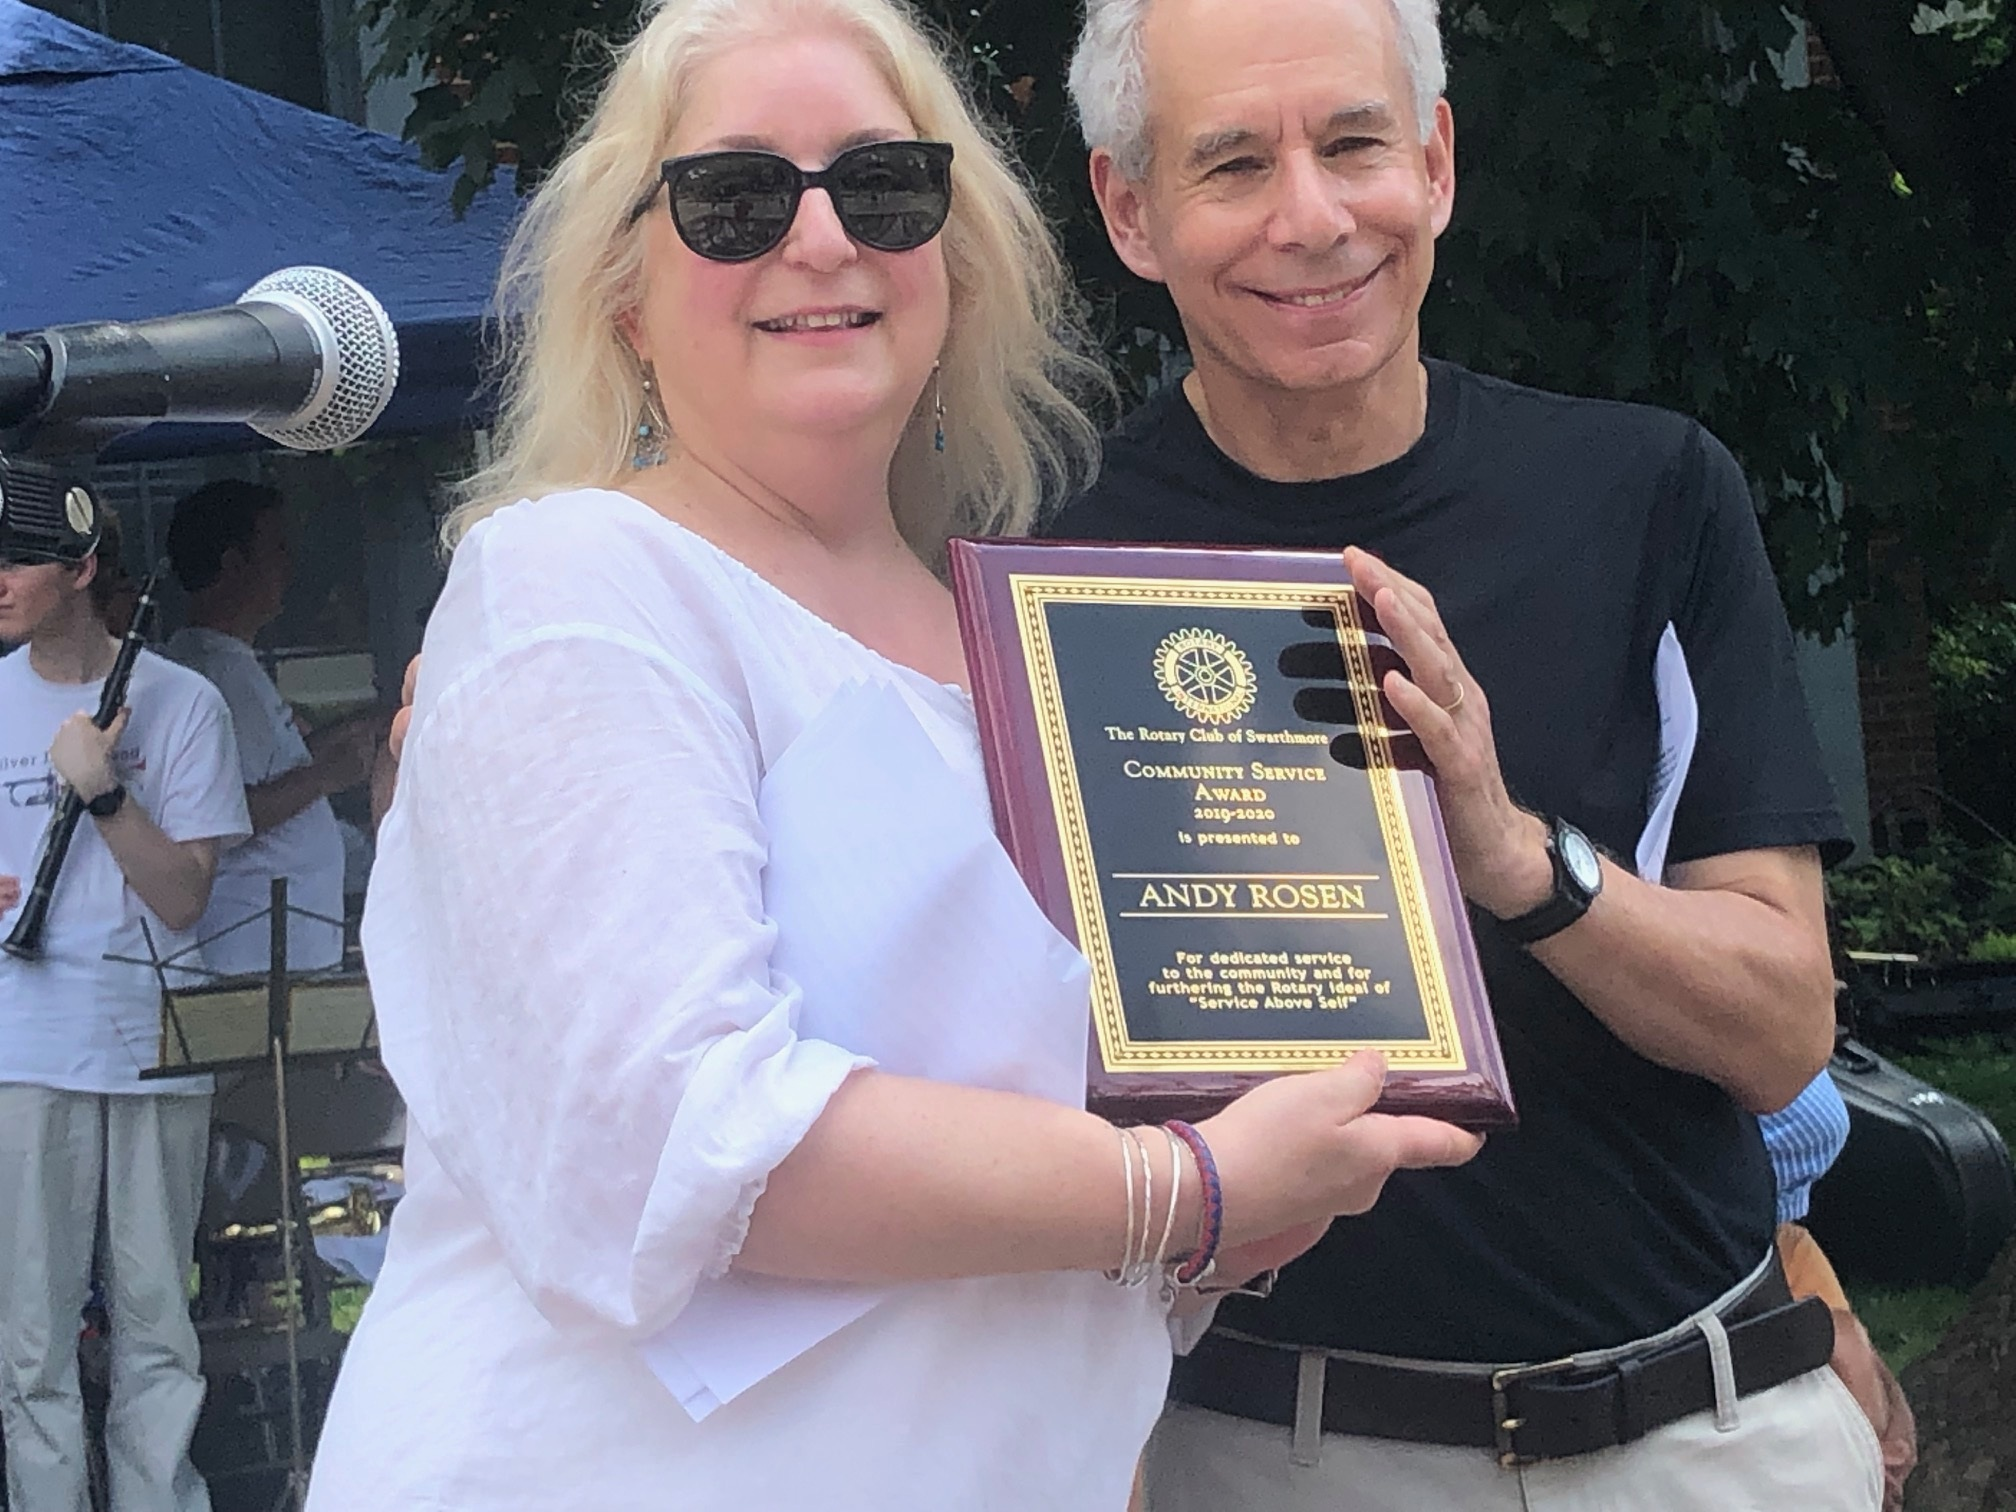 Swarthmore Rotary President Maria Zissimos presents Andy Rosen a Community Service Award